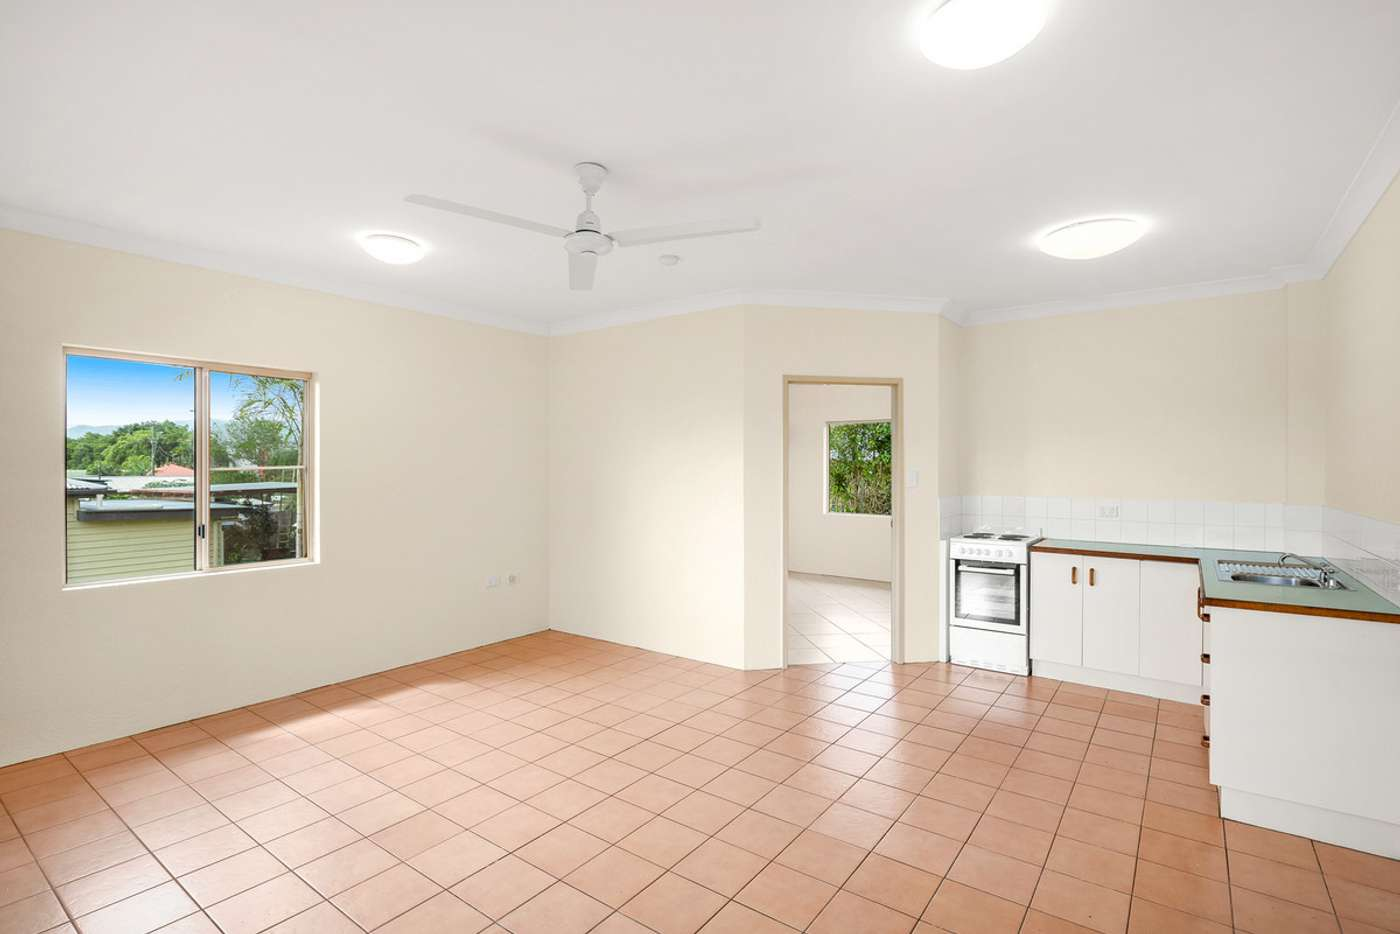 Main view of Homely unit listing, 7/217 Spence Street, Bungalow QLD 4870